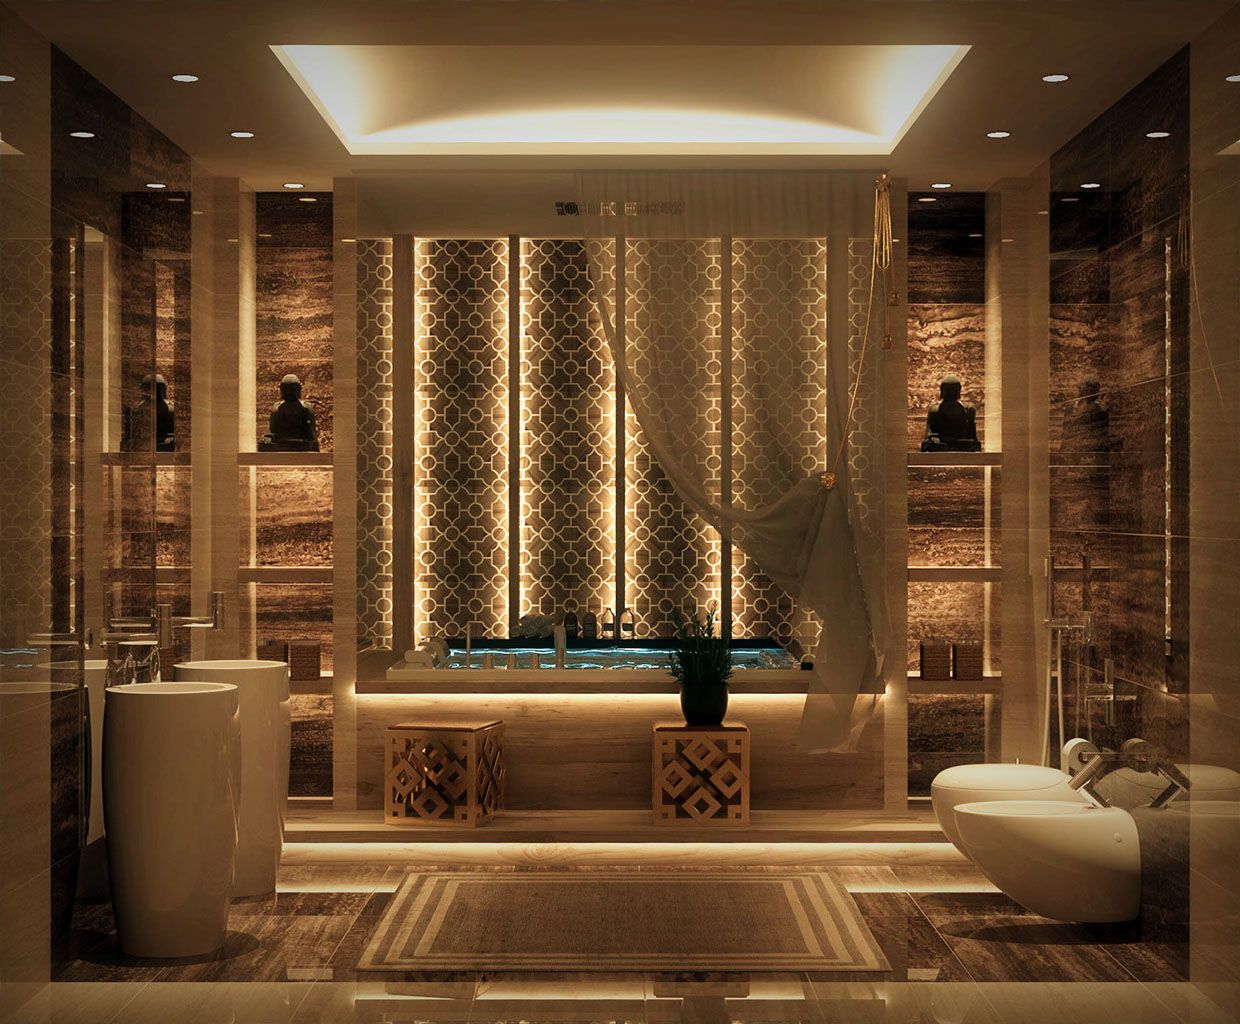 Pictures Of Luxury Bathrooms Entrancing Luxurious Bathrooms With Stunning Design Details Design Inspiration